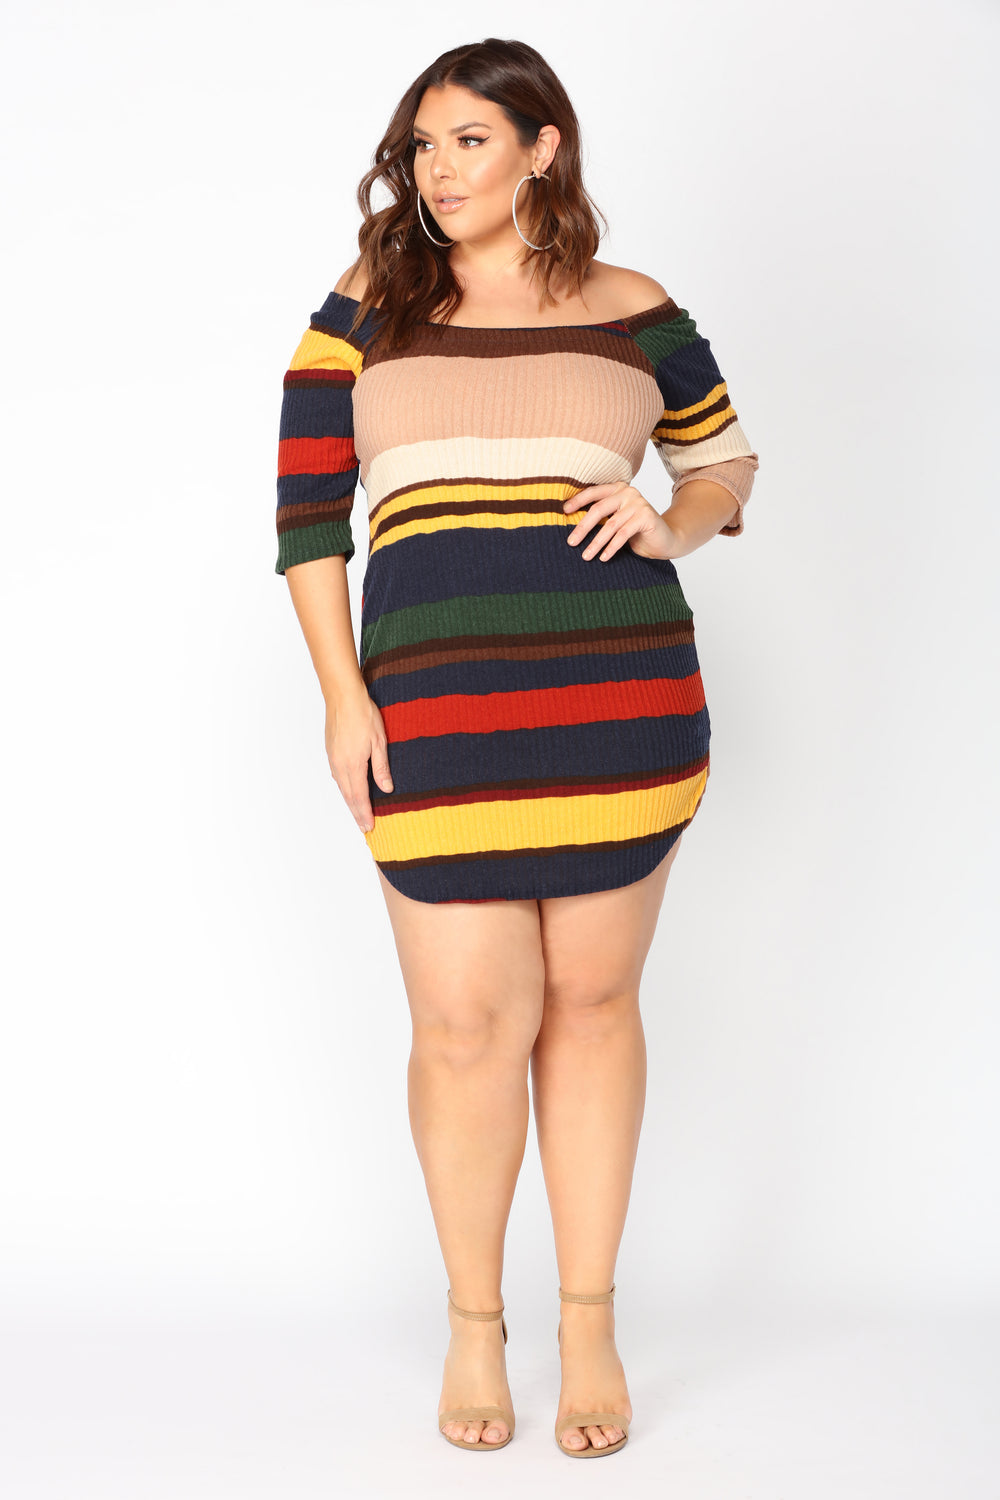 You Make Lovin' Fun Dress - Navy/Mustard